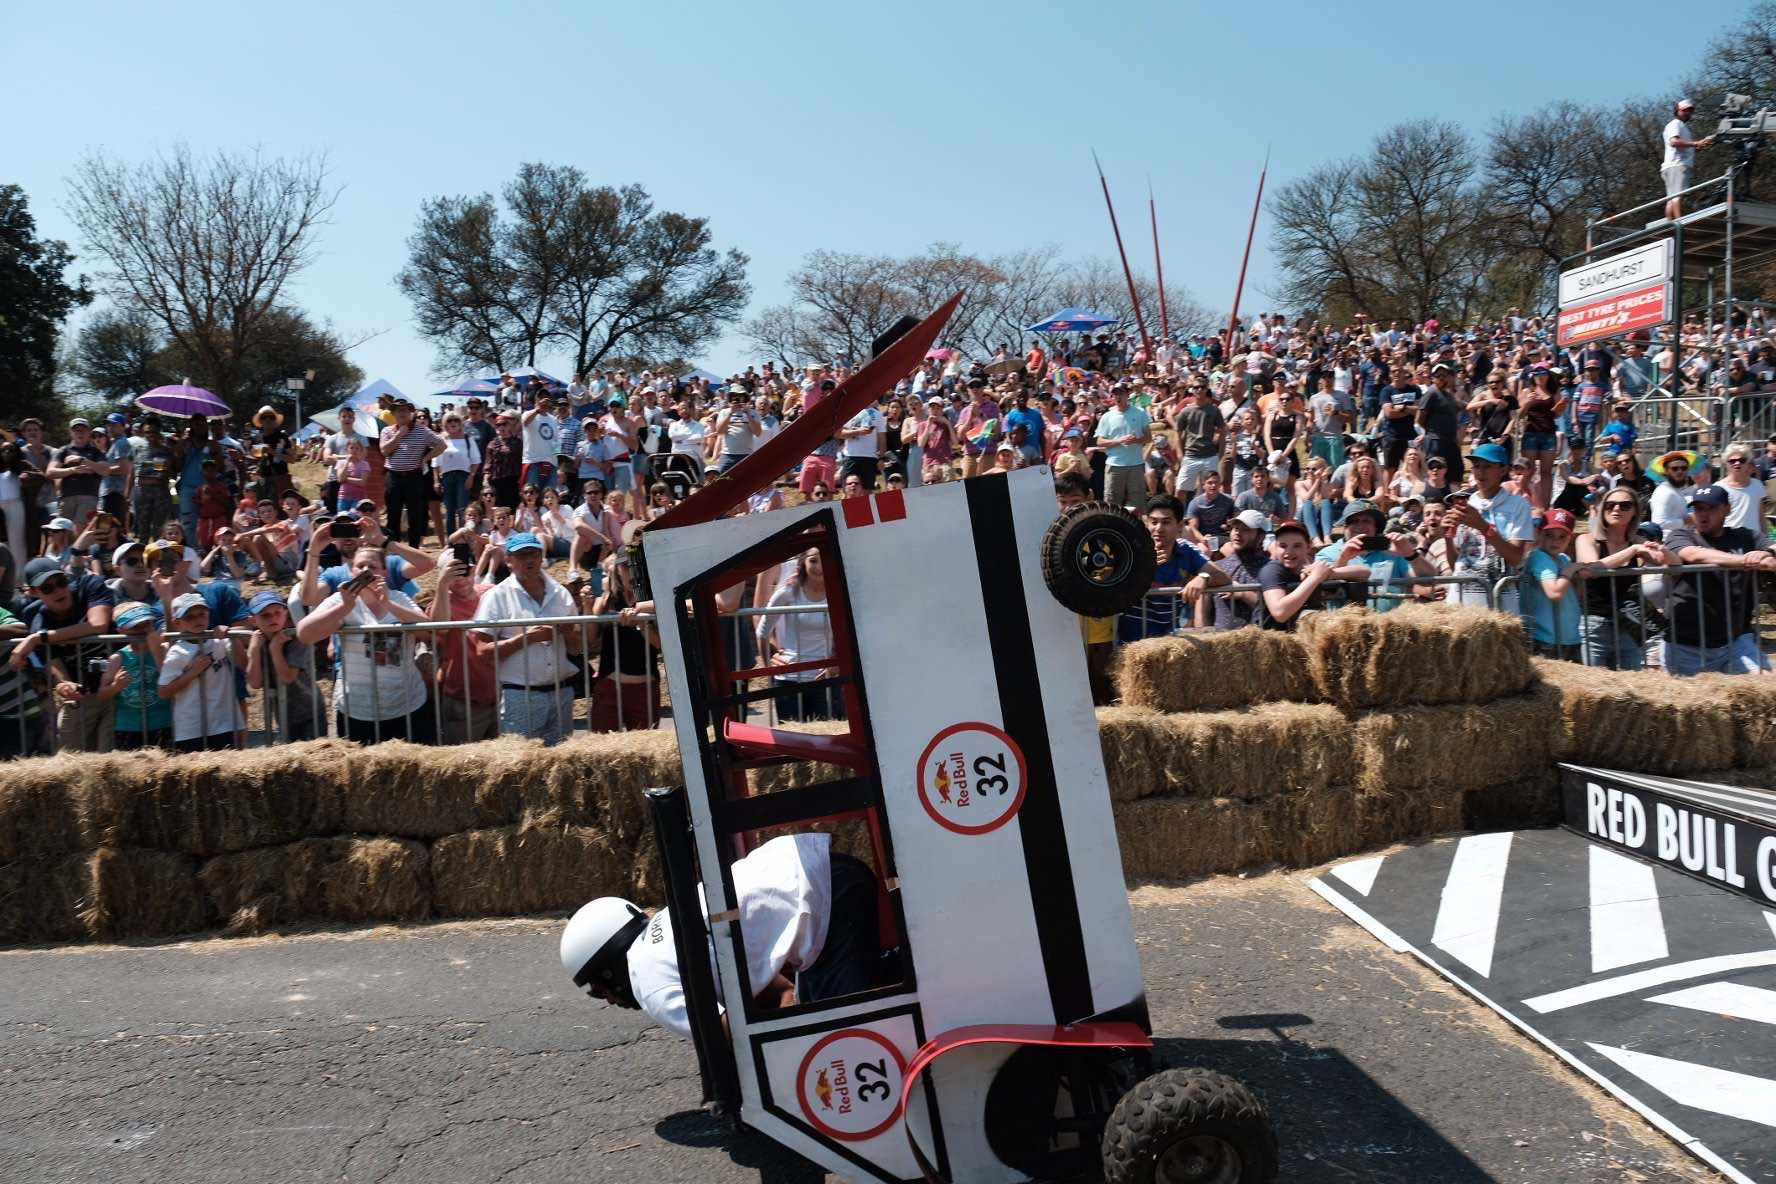 Biggest crash of the dat at the Red Bull Box Cart Race